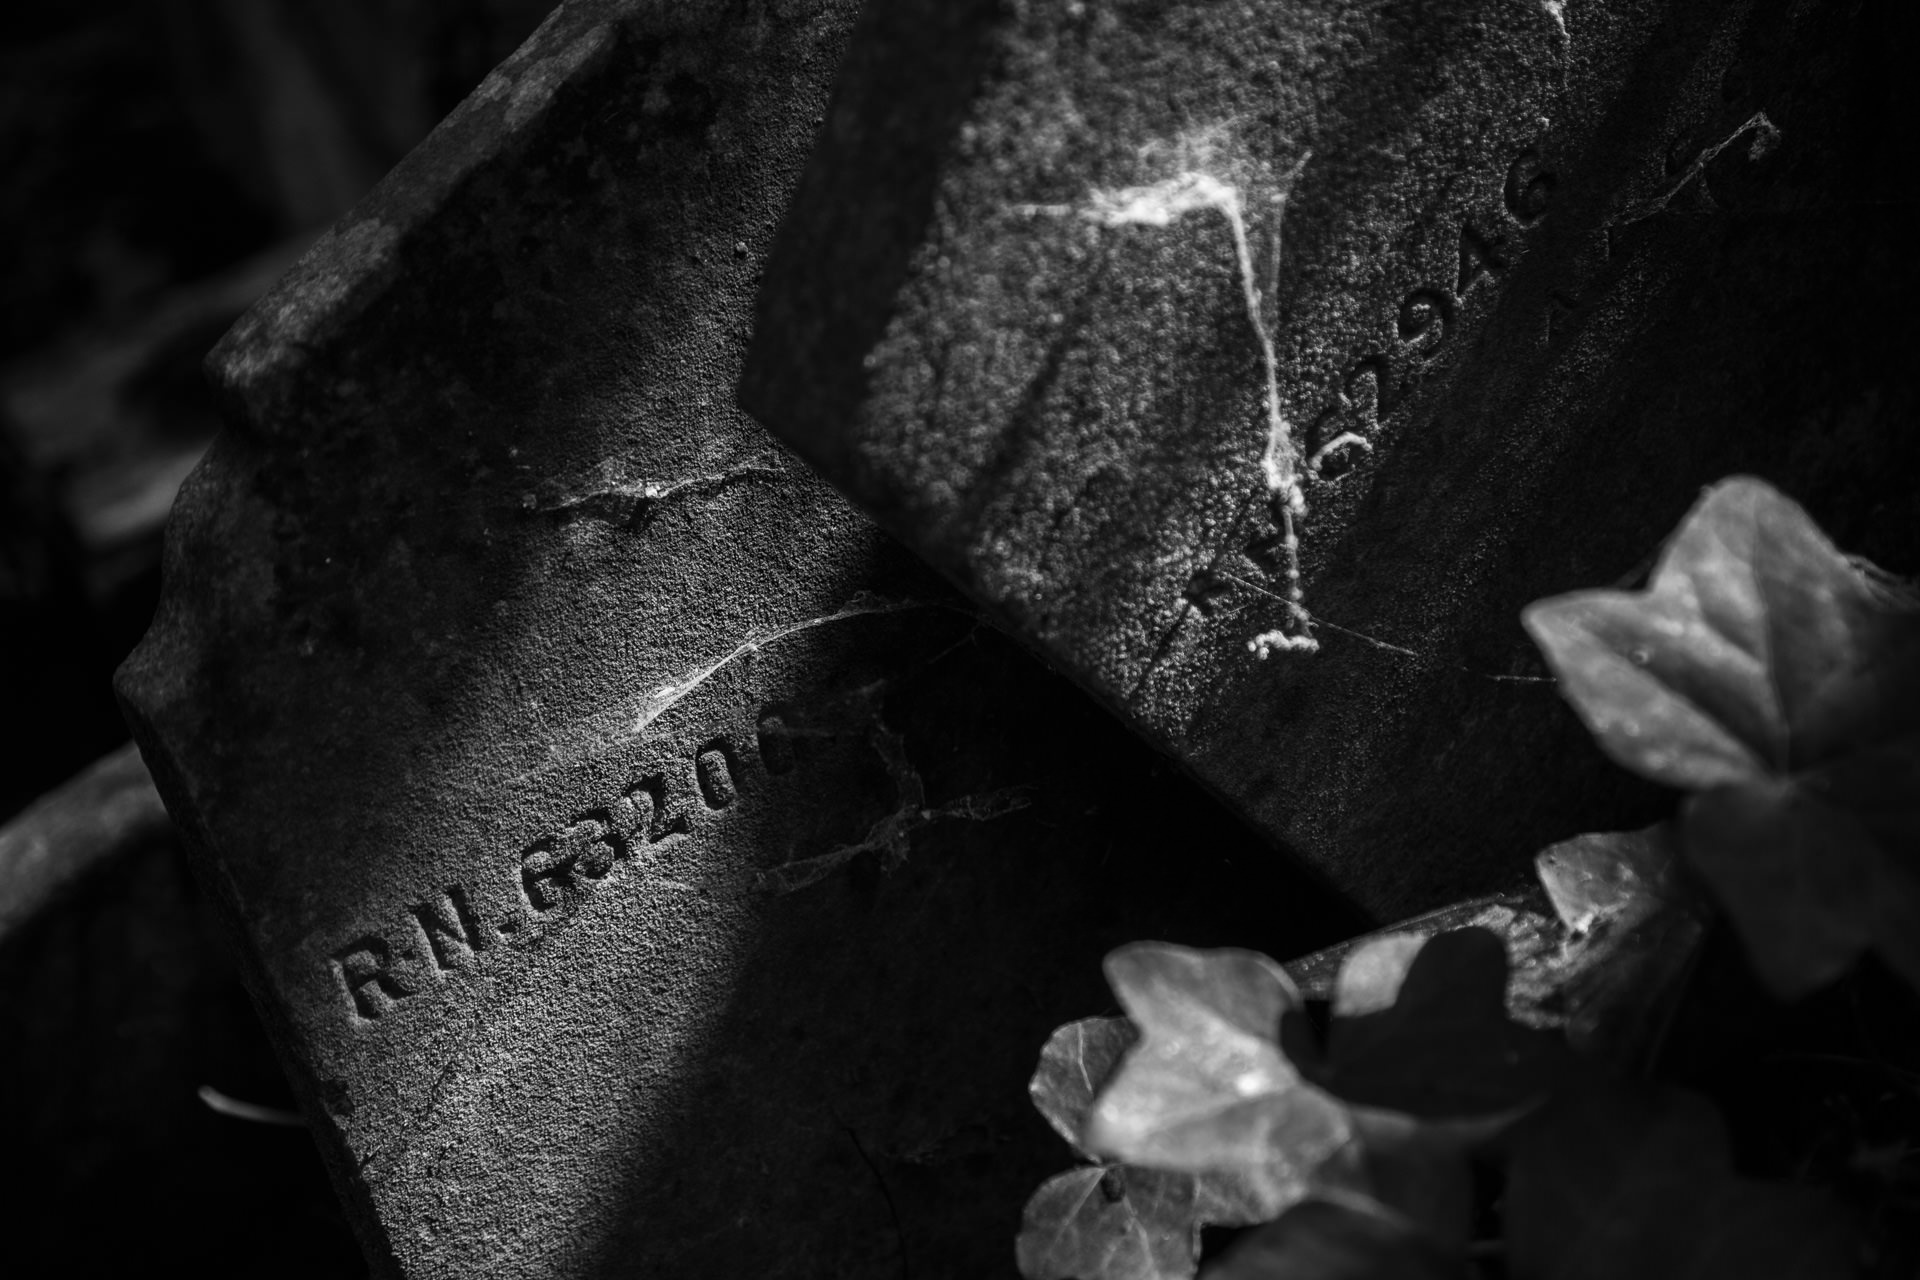 Gravestone details from Abney Park, a large meandering garden cemetery in Stoke Newington.